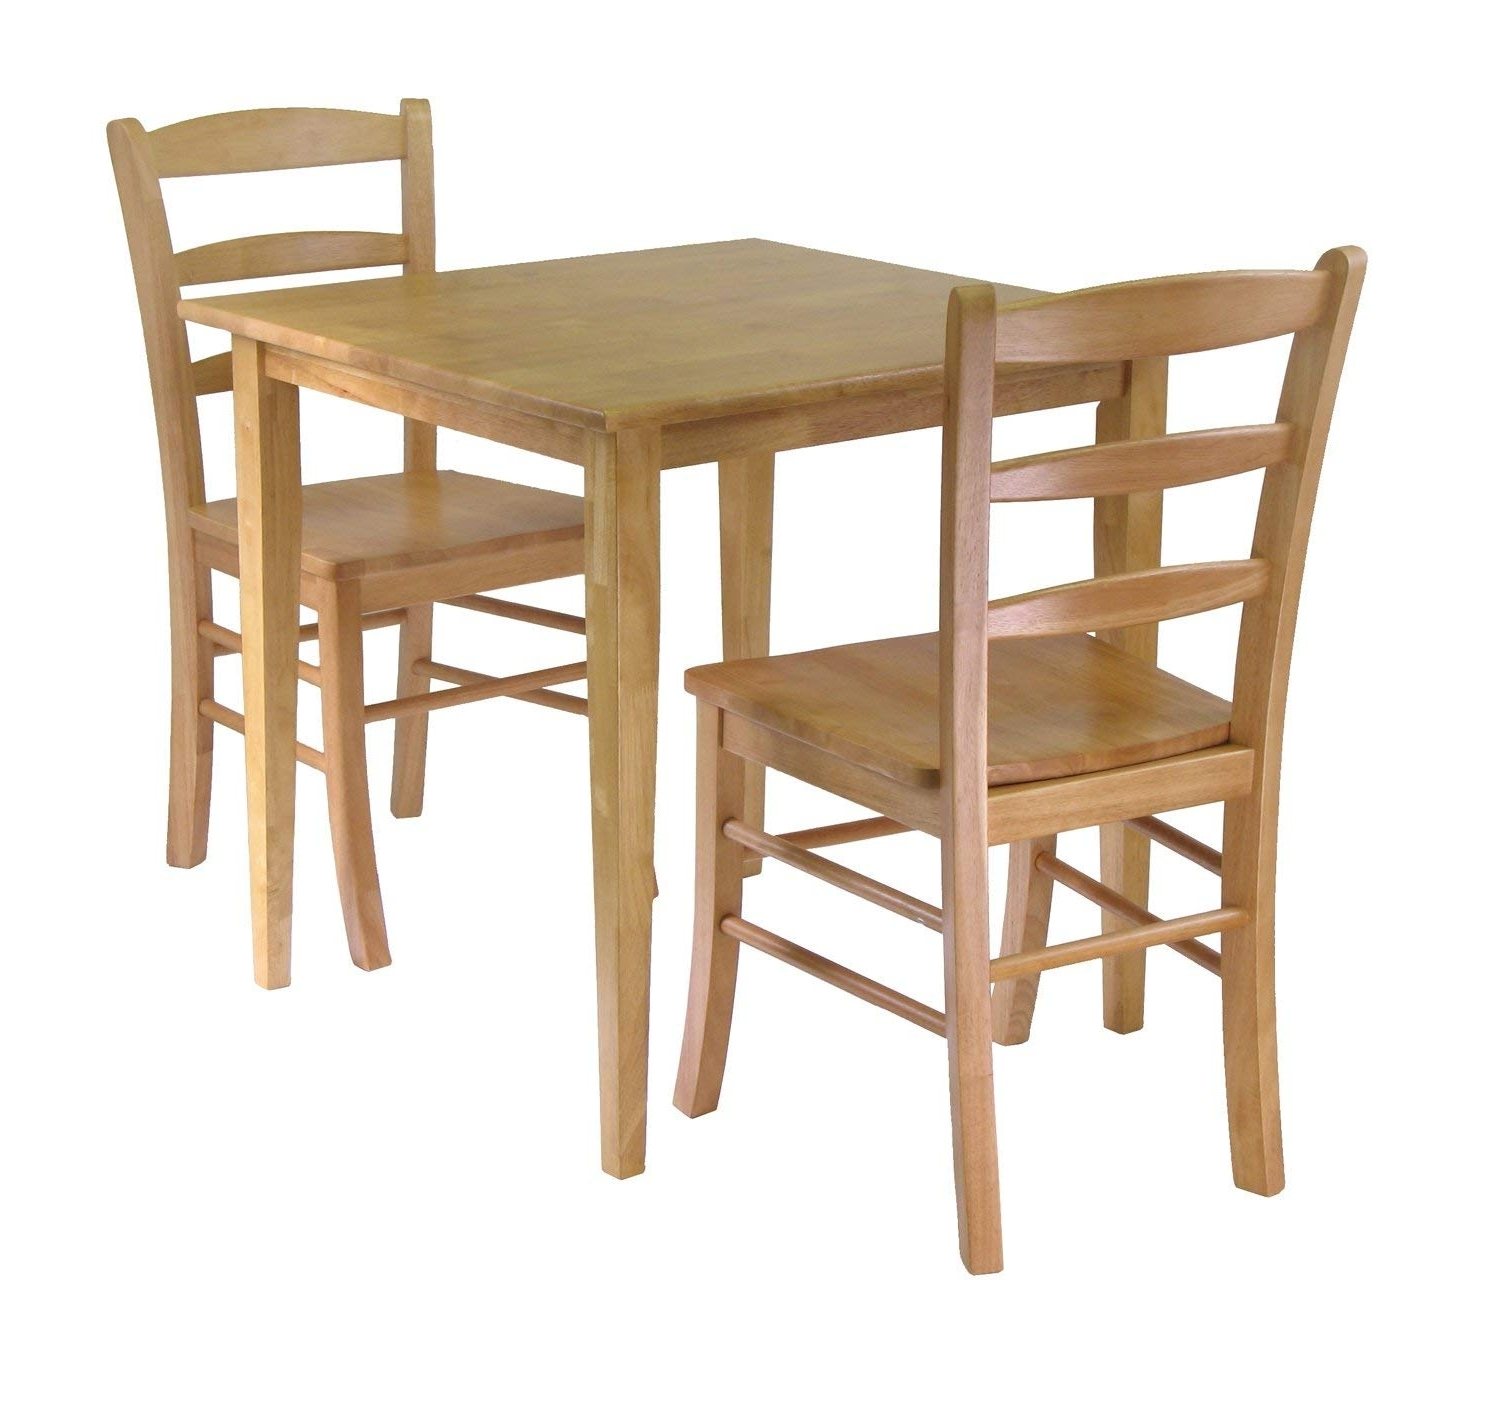 Two Person Dining Tables In 2018 Amazon – Winsome Groveland Square Dining Table With 2 Chairs, (View 11 of 25)